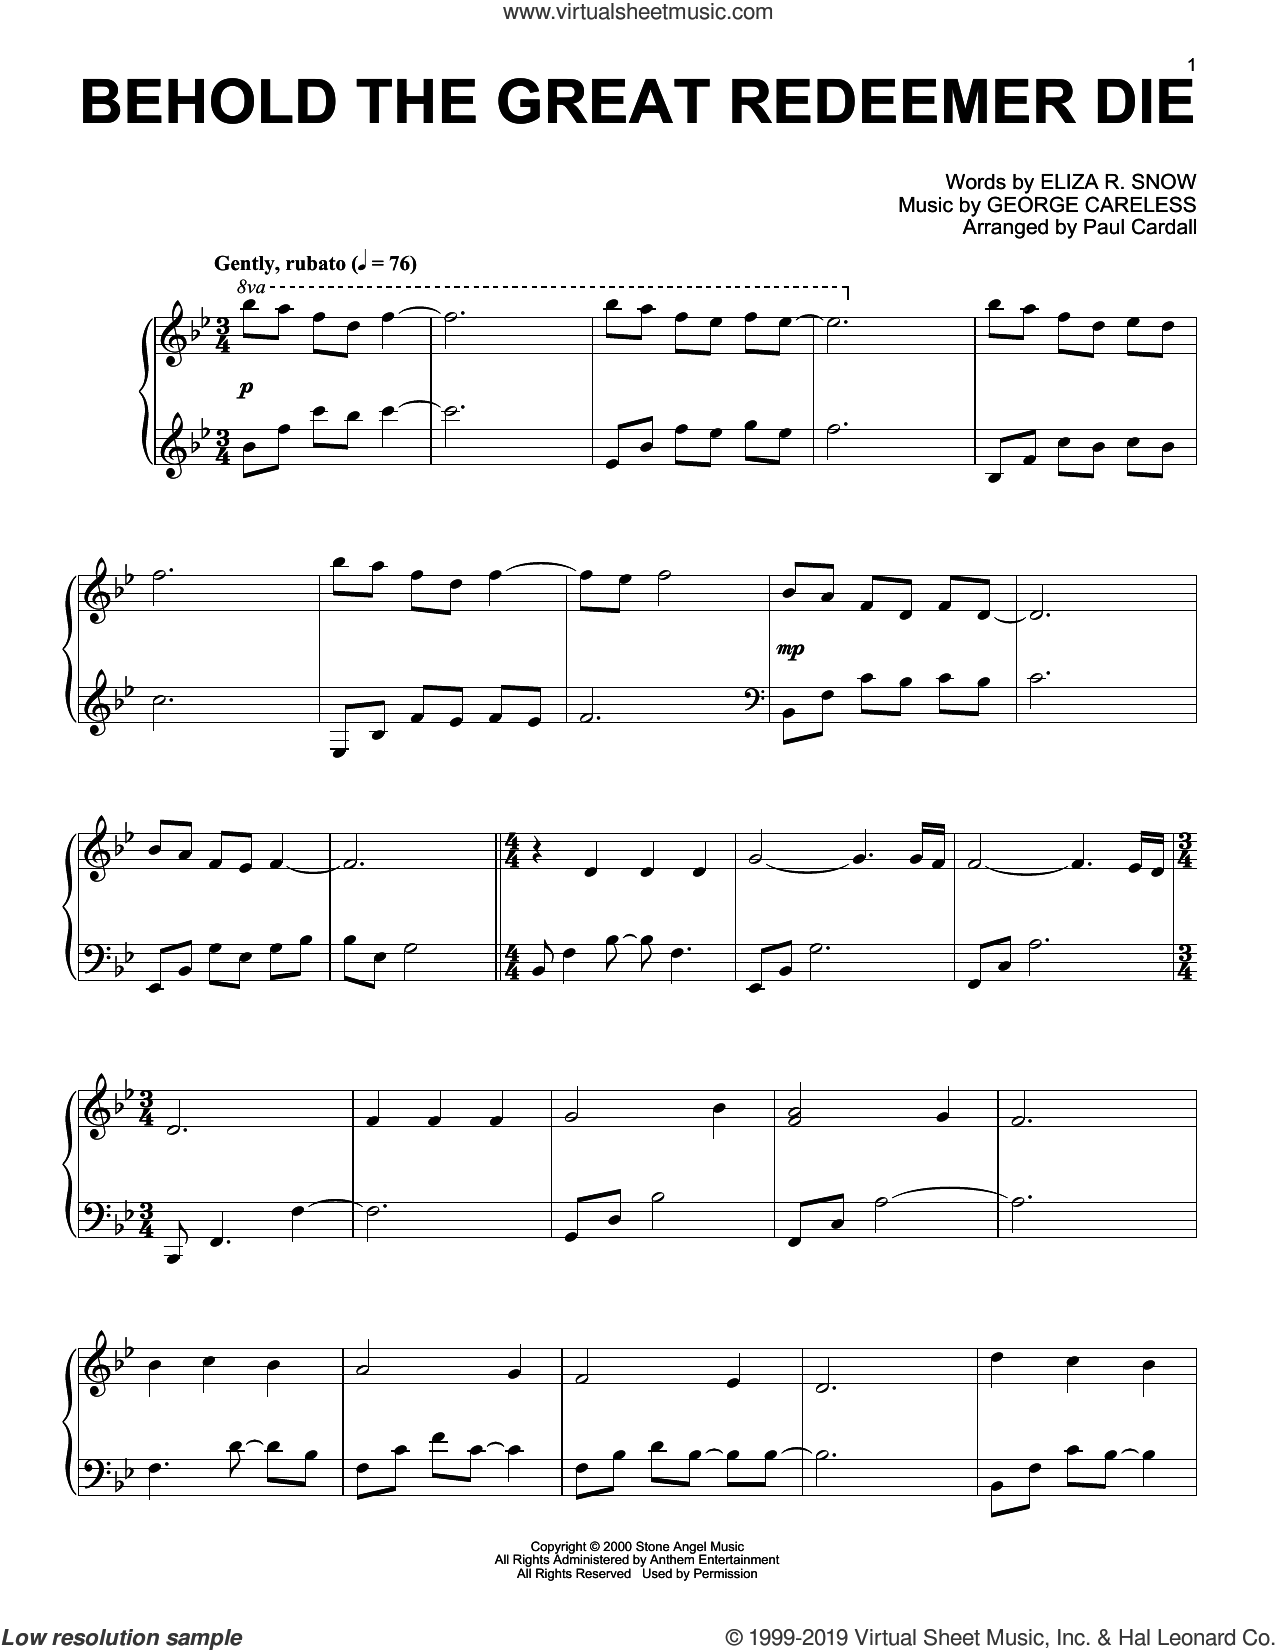 Behold The Great Redeemer Die (arr. Paul Cardall) sheet music for piano solo by George Careless, Paul Cardall and Eliza R. Snow, intermediate skill level